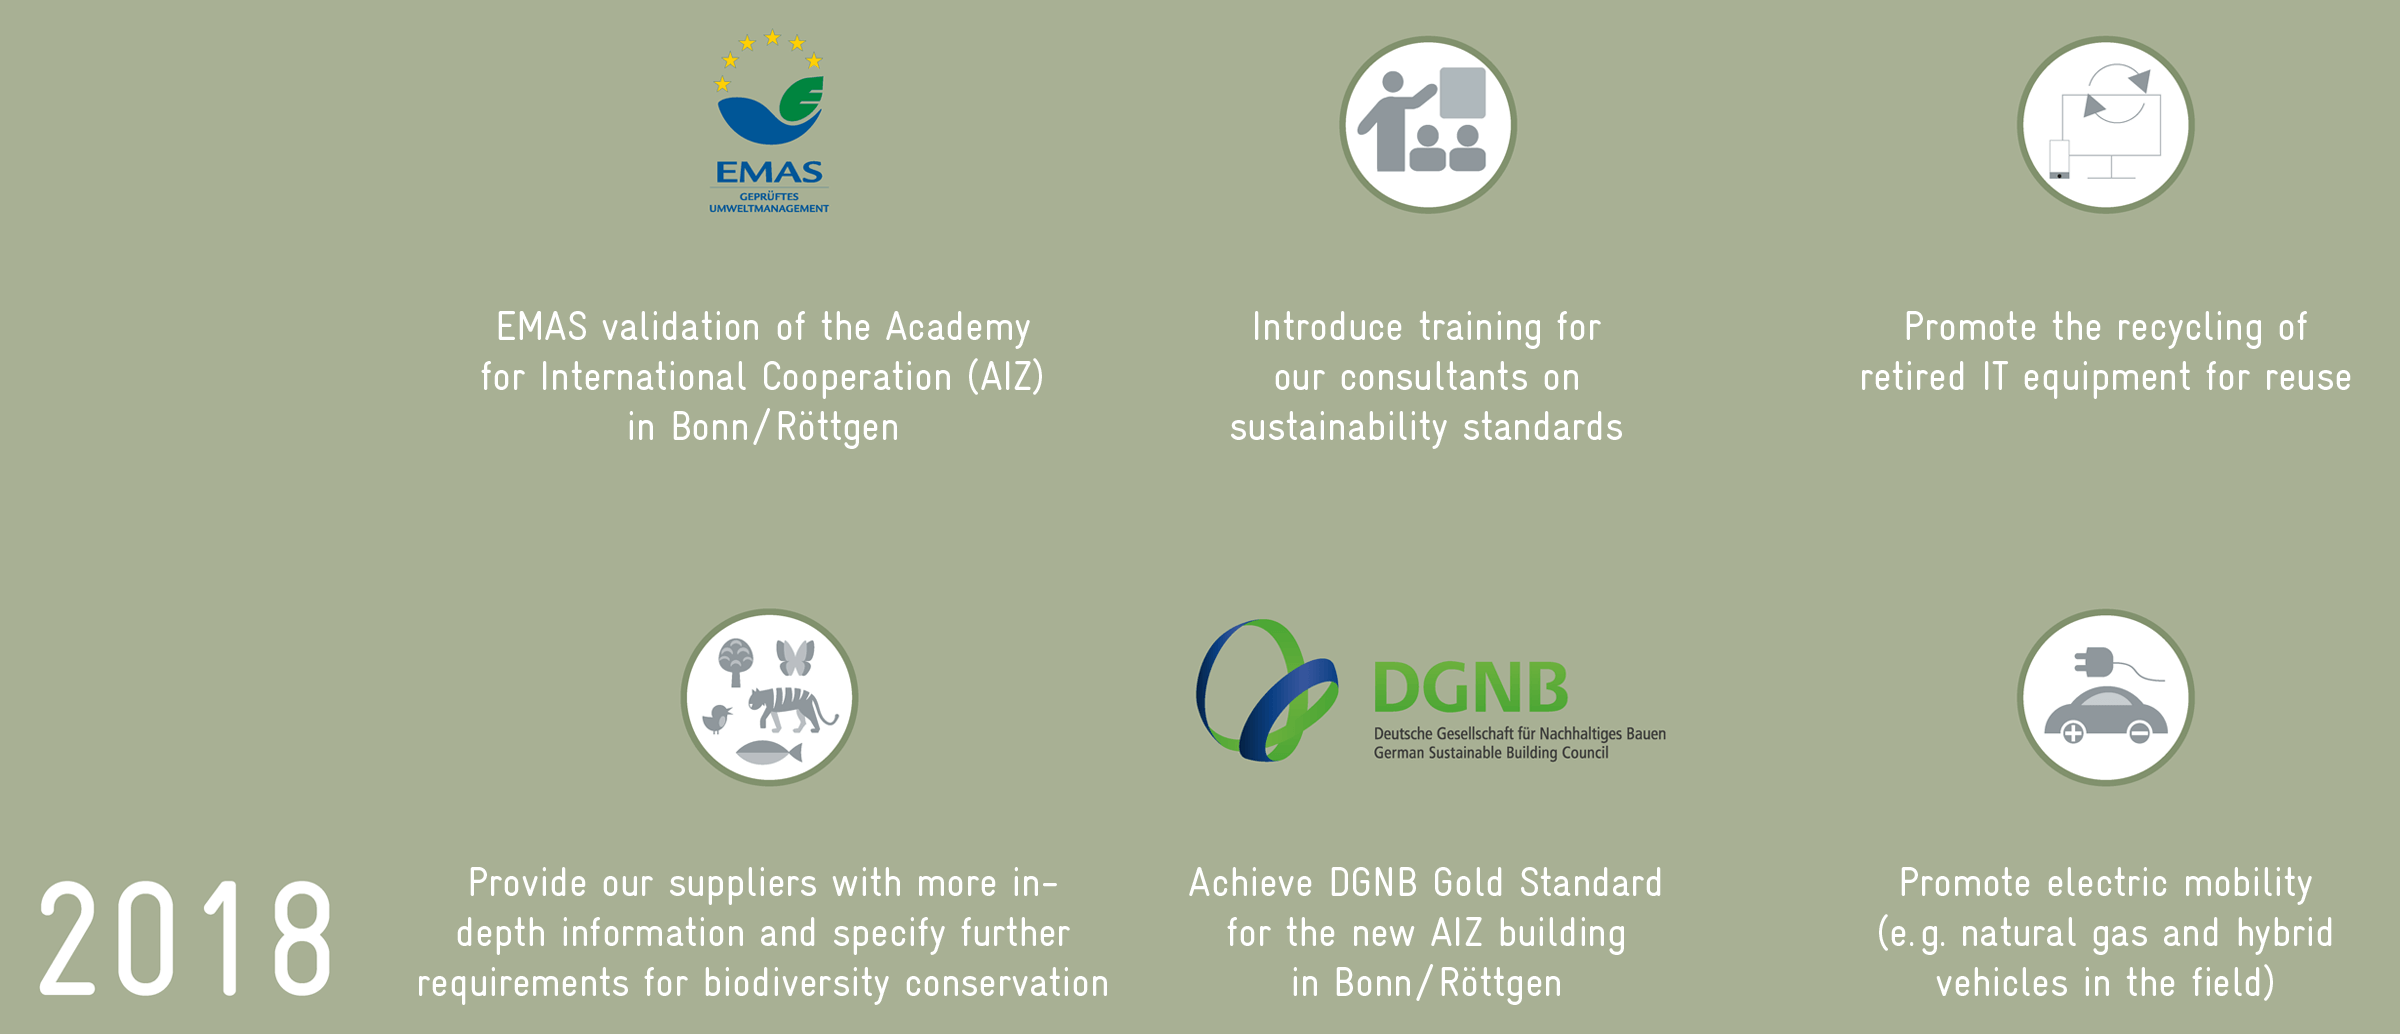 2018: EMAS validation of AIZ, consultant training on sustainability standards, recycling of IT equipment, requirements for biodiversity conservation for suppliers, DGNB Gold Stnadard for AIZ building, promote electric mobility